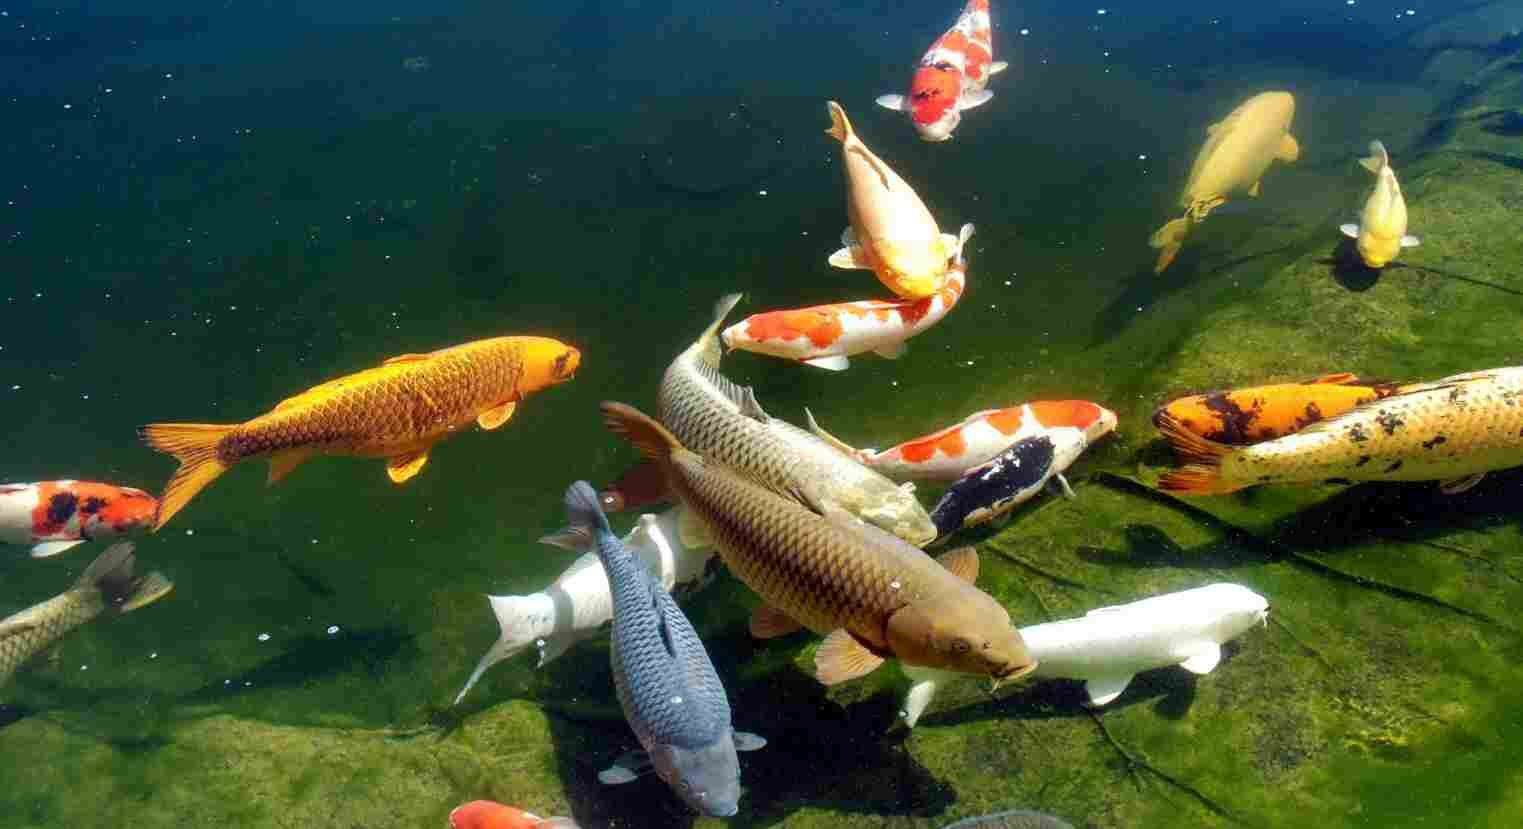 Koi fish pond wallpaper hd koi fish in the pond koi for What is a koi pond